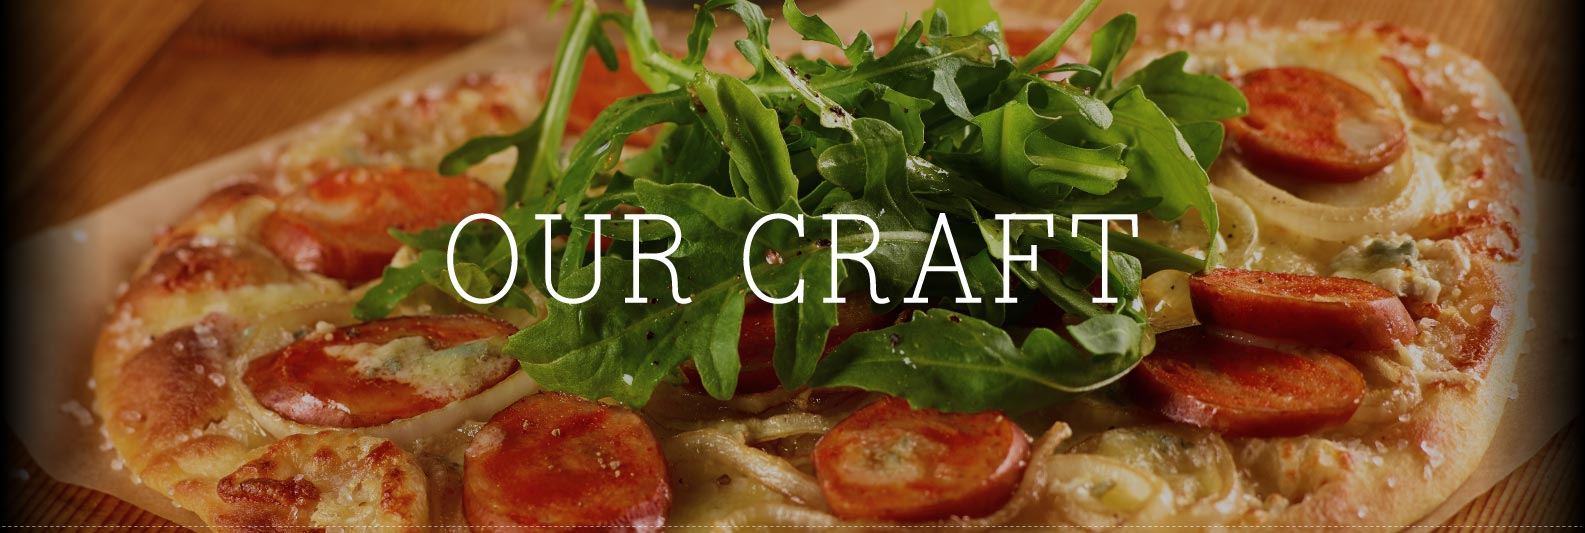 Our Craft - Chef's Craft Gourmet by Wayne Farms